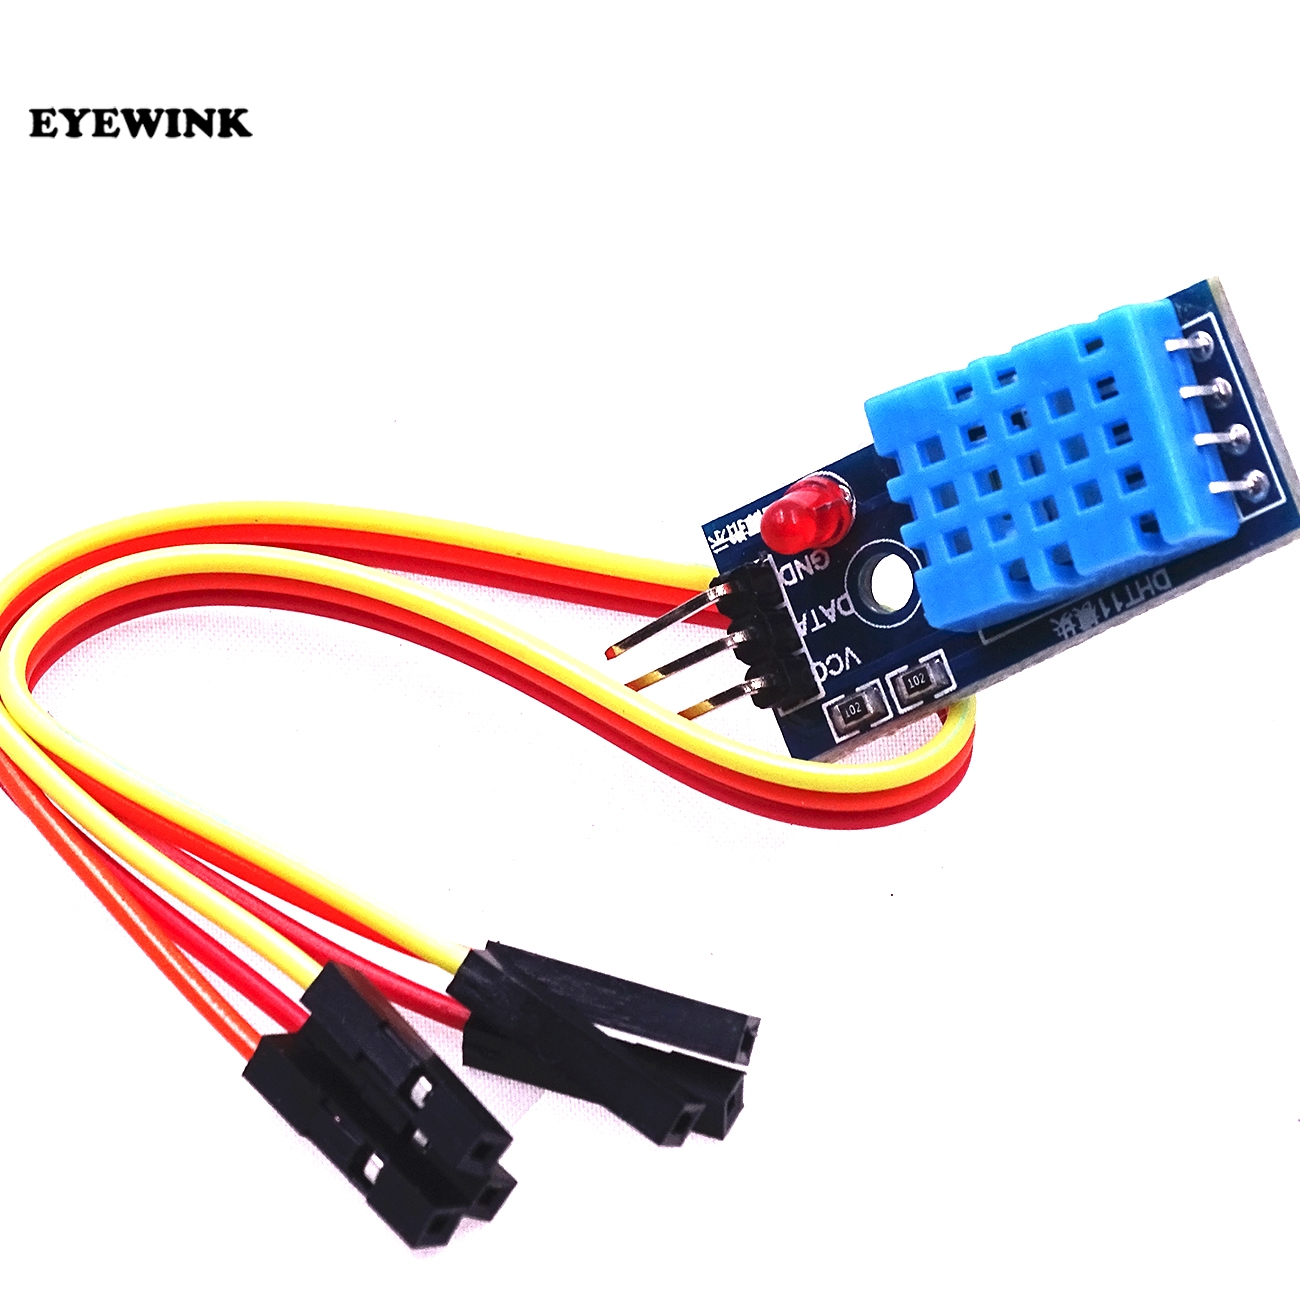 50pcs DHT11 Temperature and Relative Humidity Sensor Module With Cable